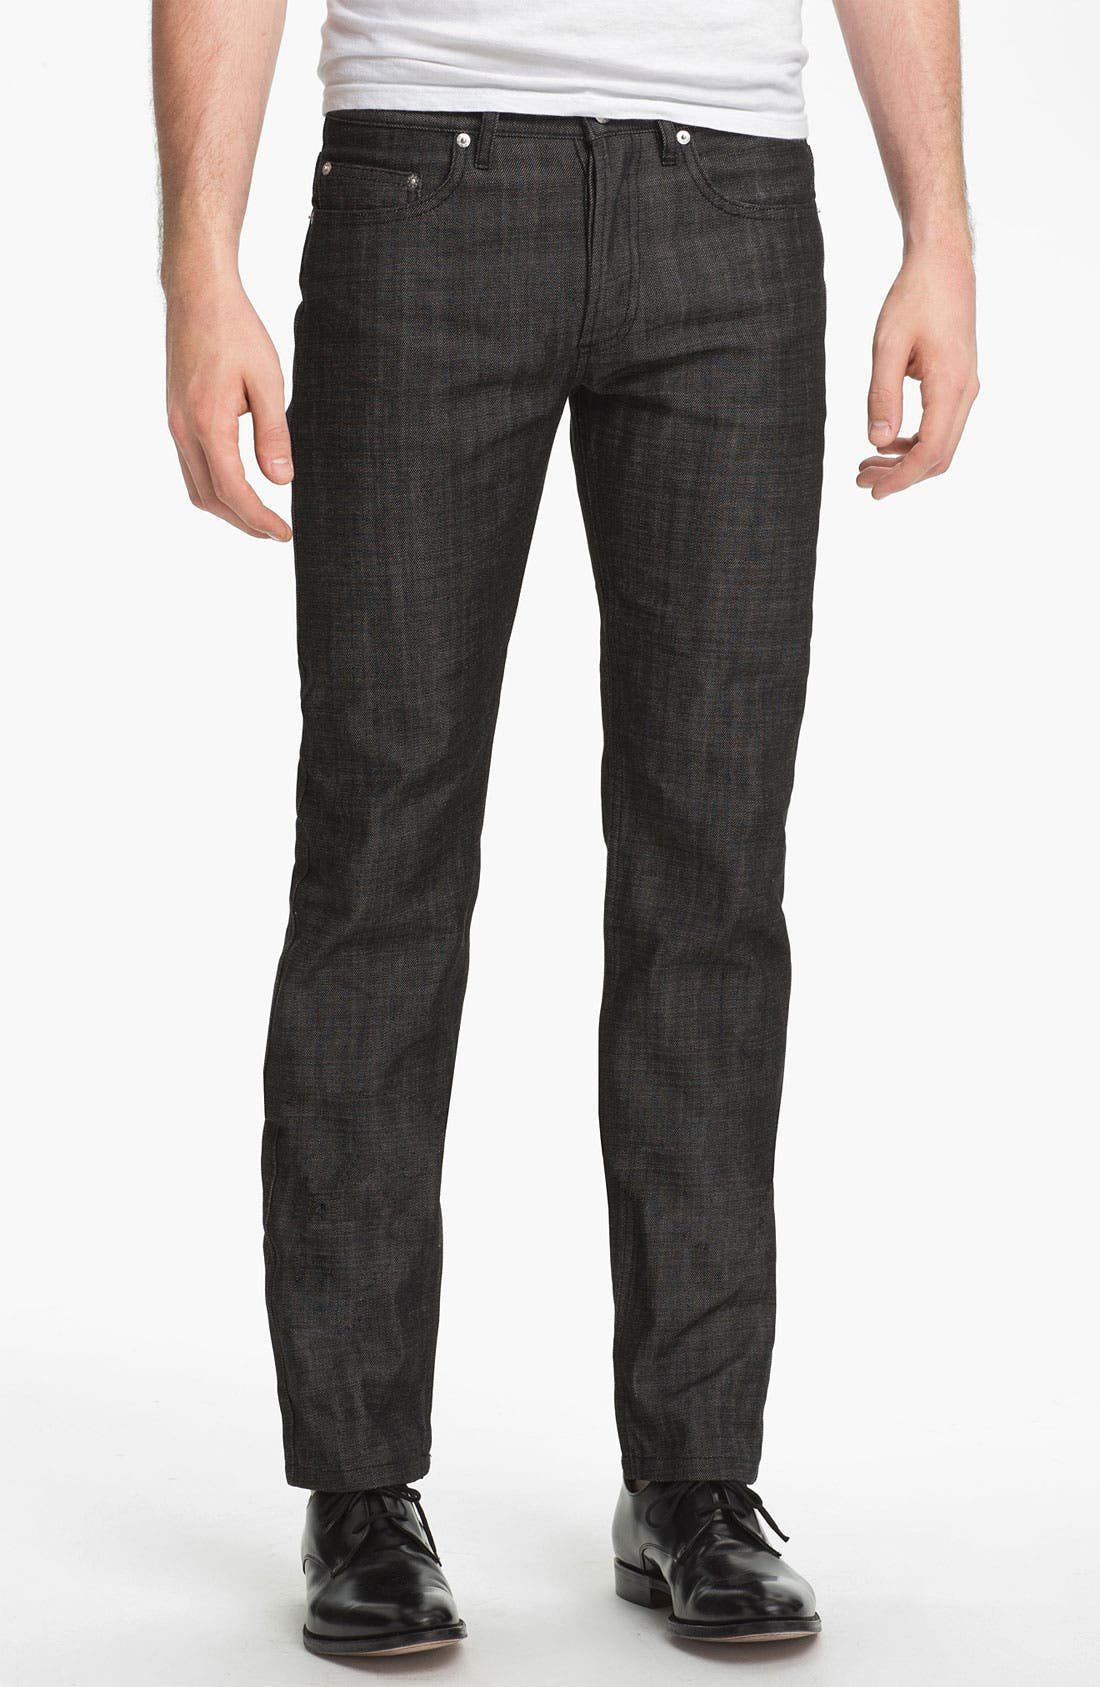 Main Image - A.P.C. 'New Standard' Slim Straight Leg Jeans (Black) (Online Only)